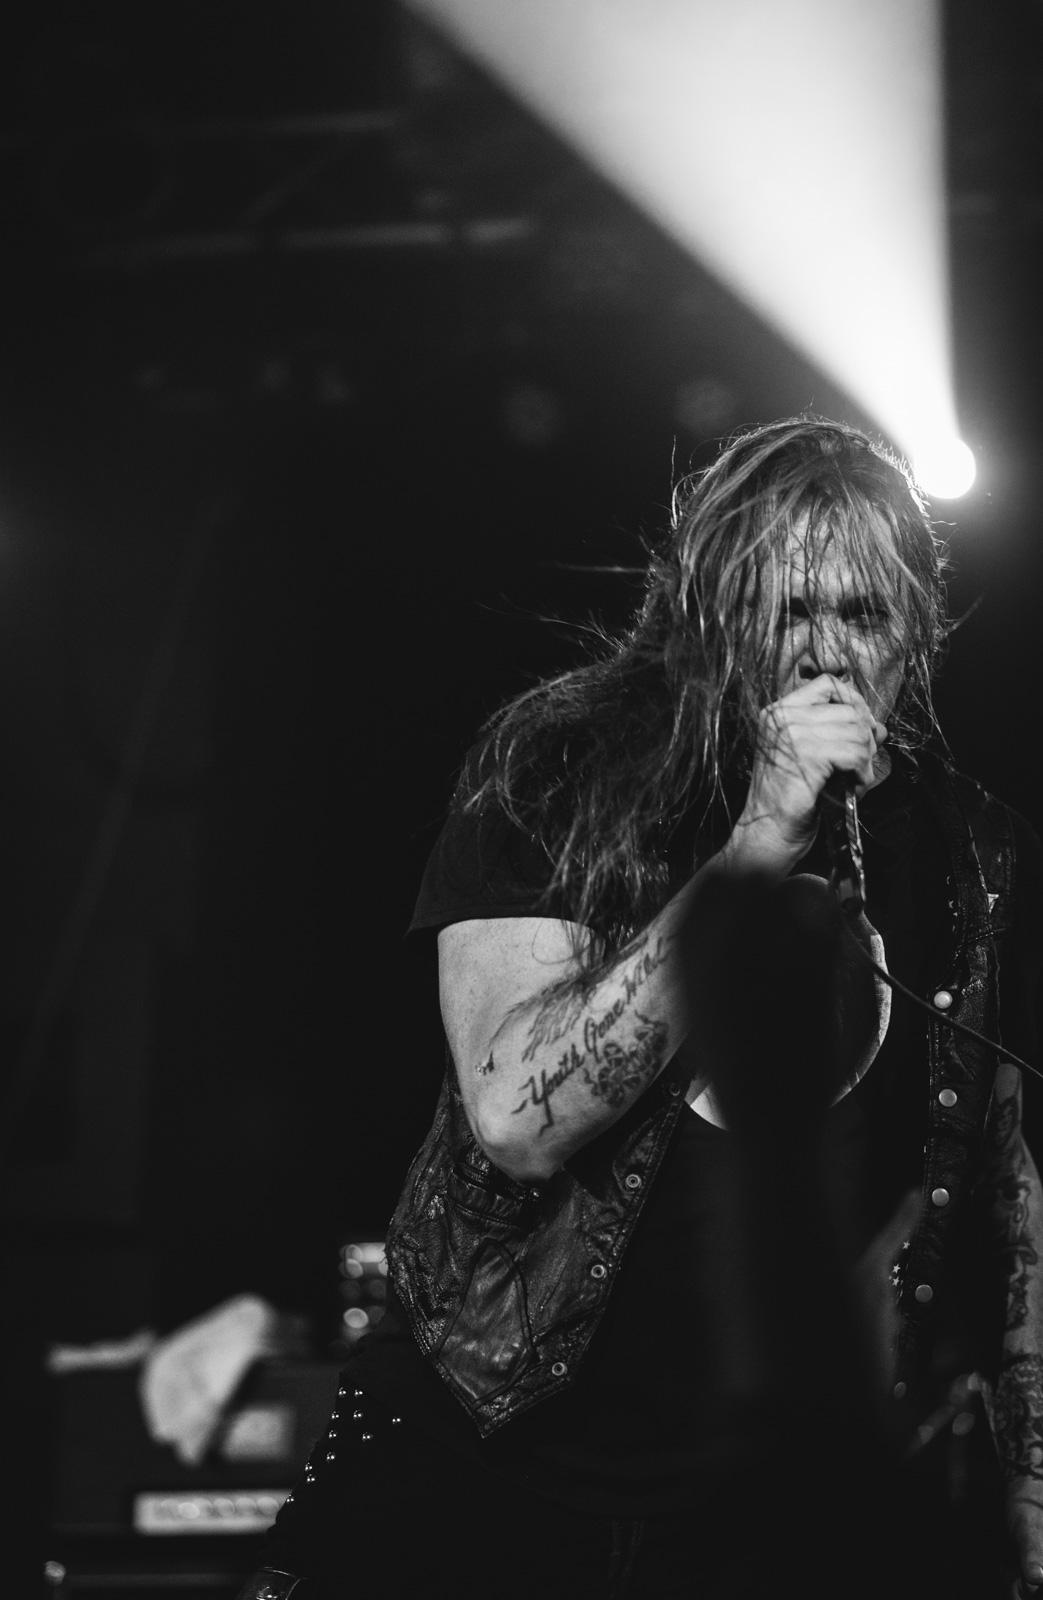 buckcherry_sebastianbach_blog12.jpg